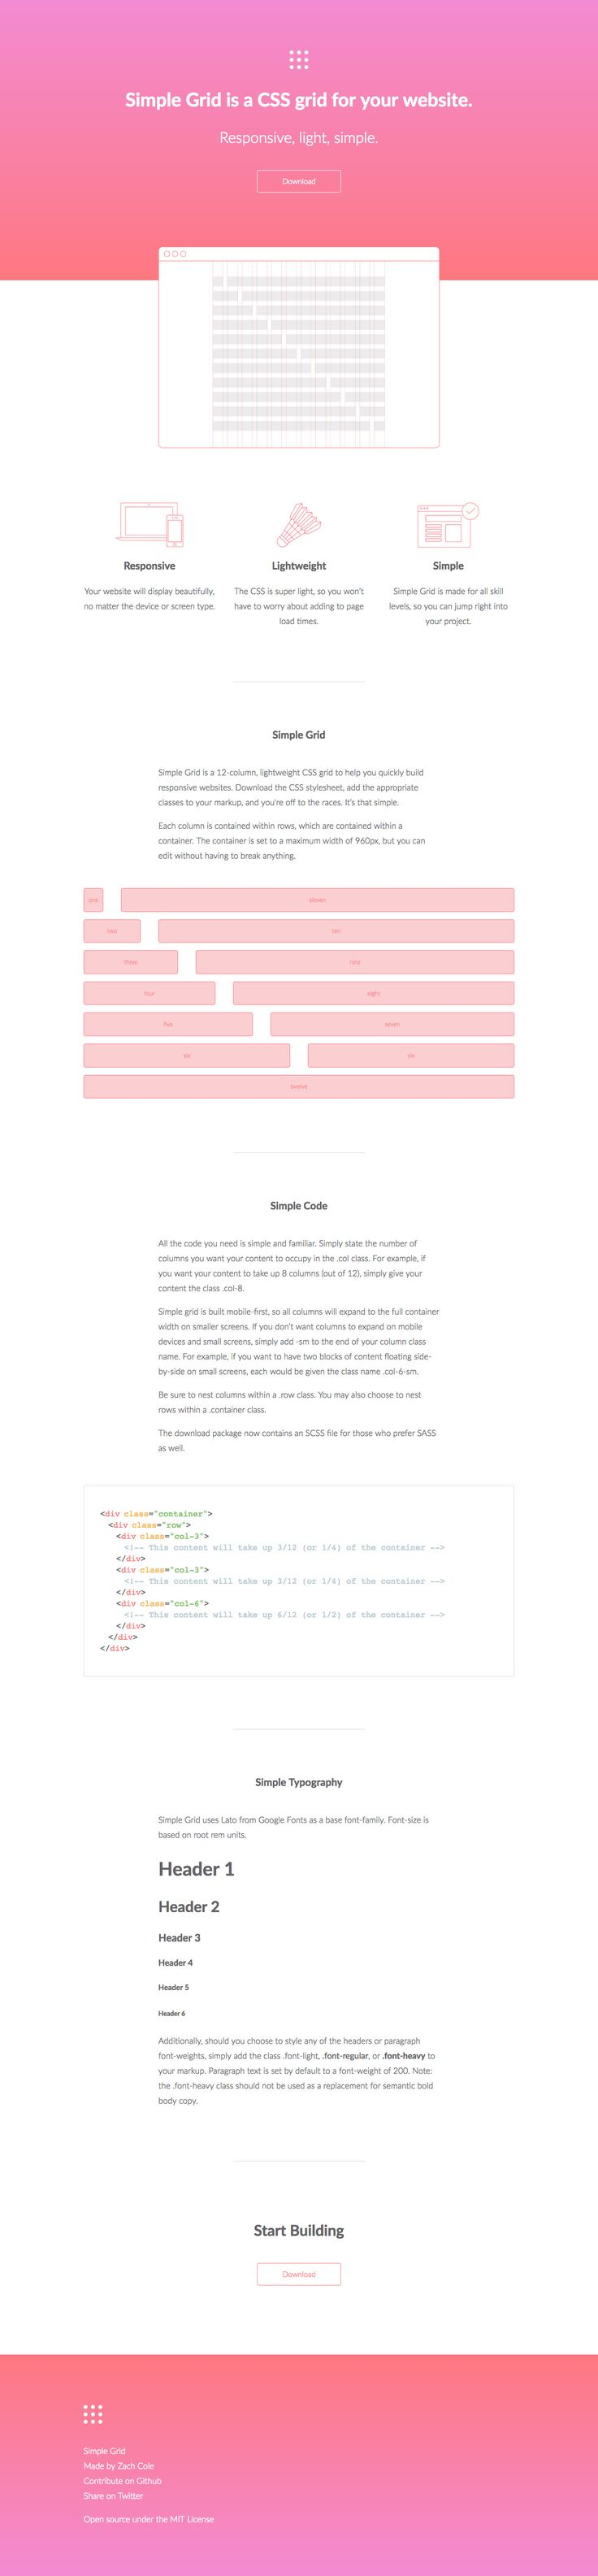 Lovely minimal One Pager promoting the 'Simple Grid' CSS Framework by Zach Cole. What a great choice using a shuttlecock illustration to represent lightweight in the feature section.